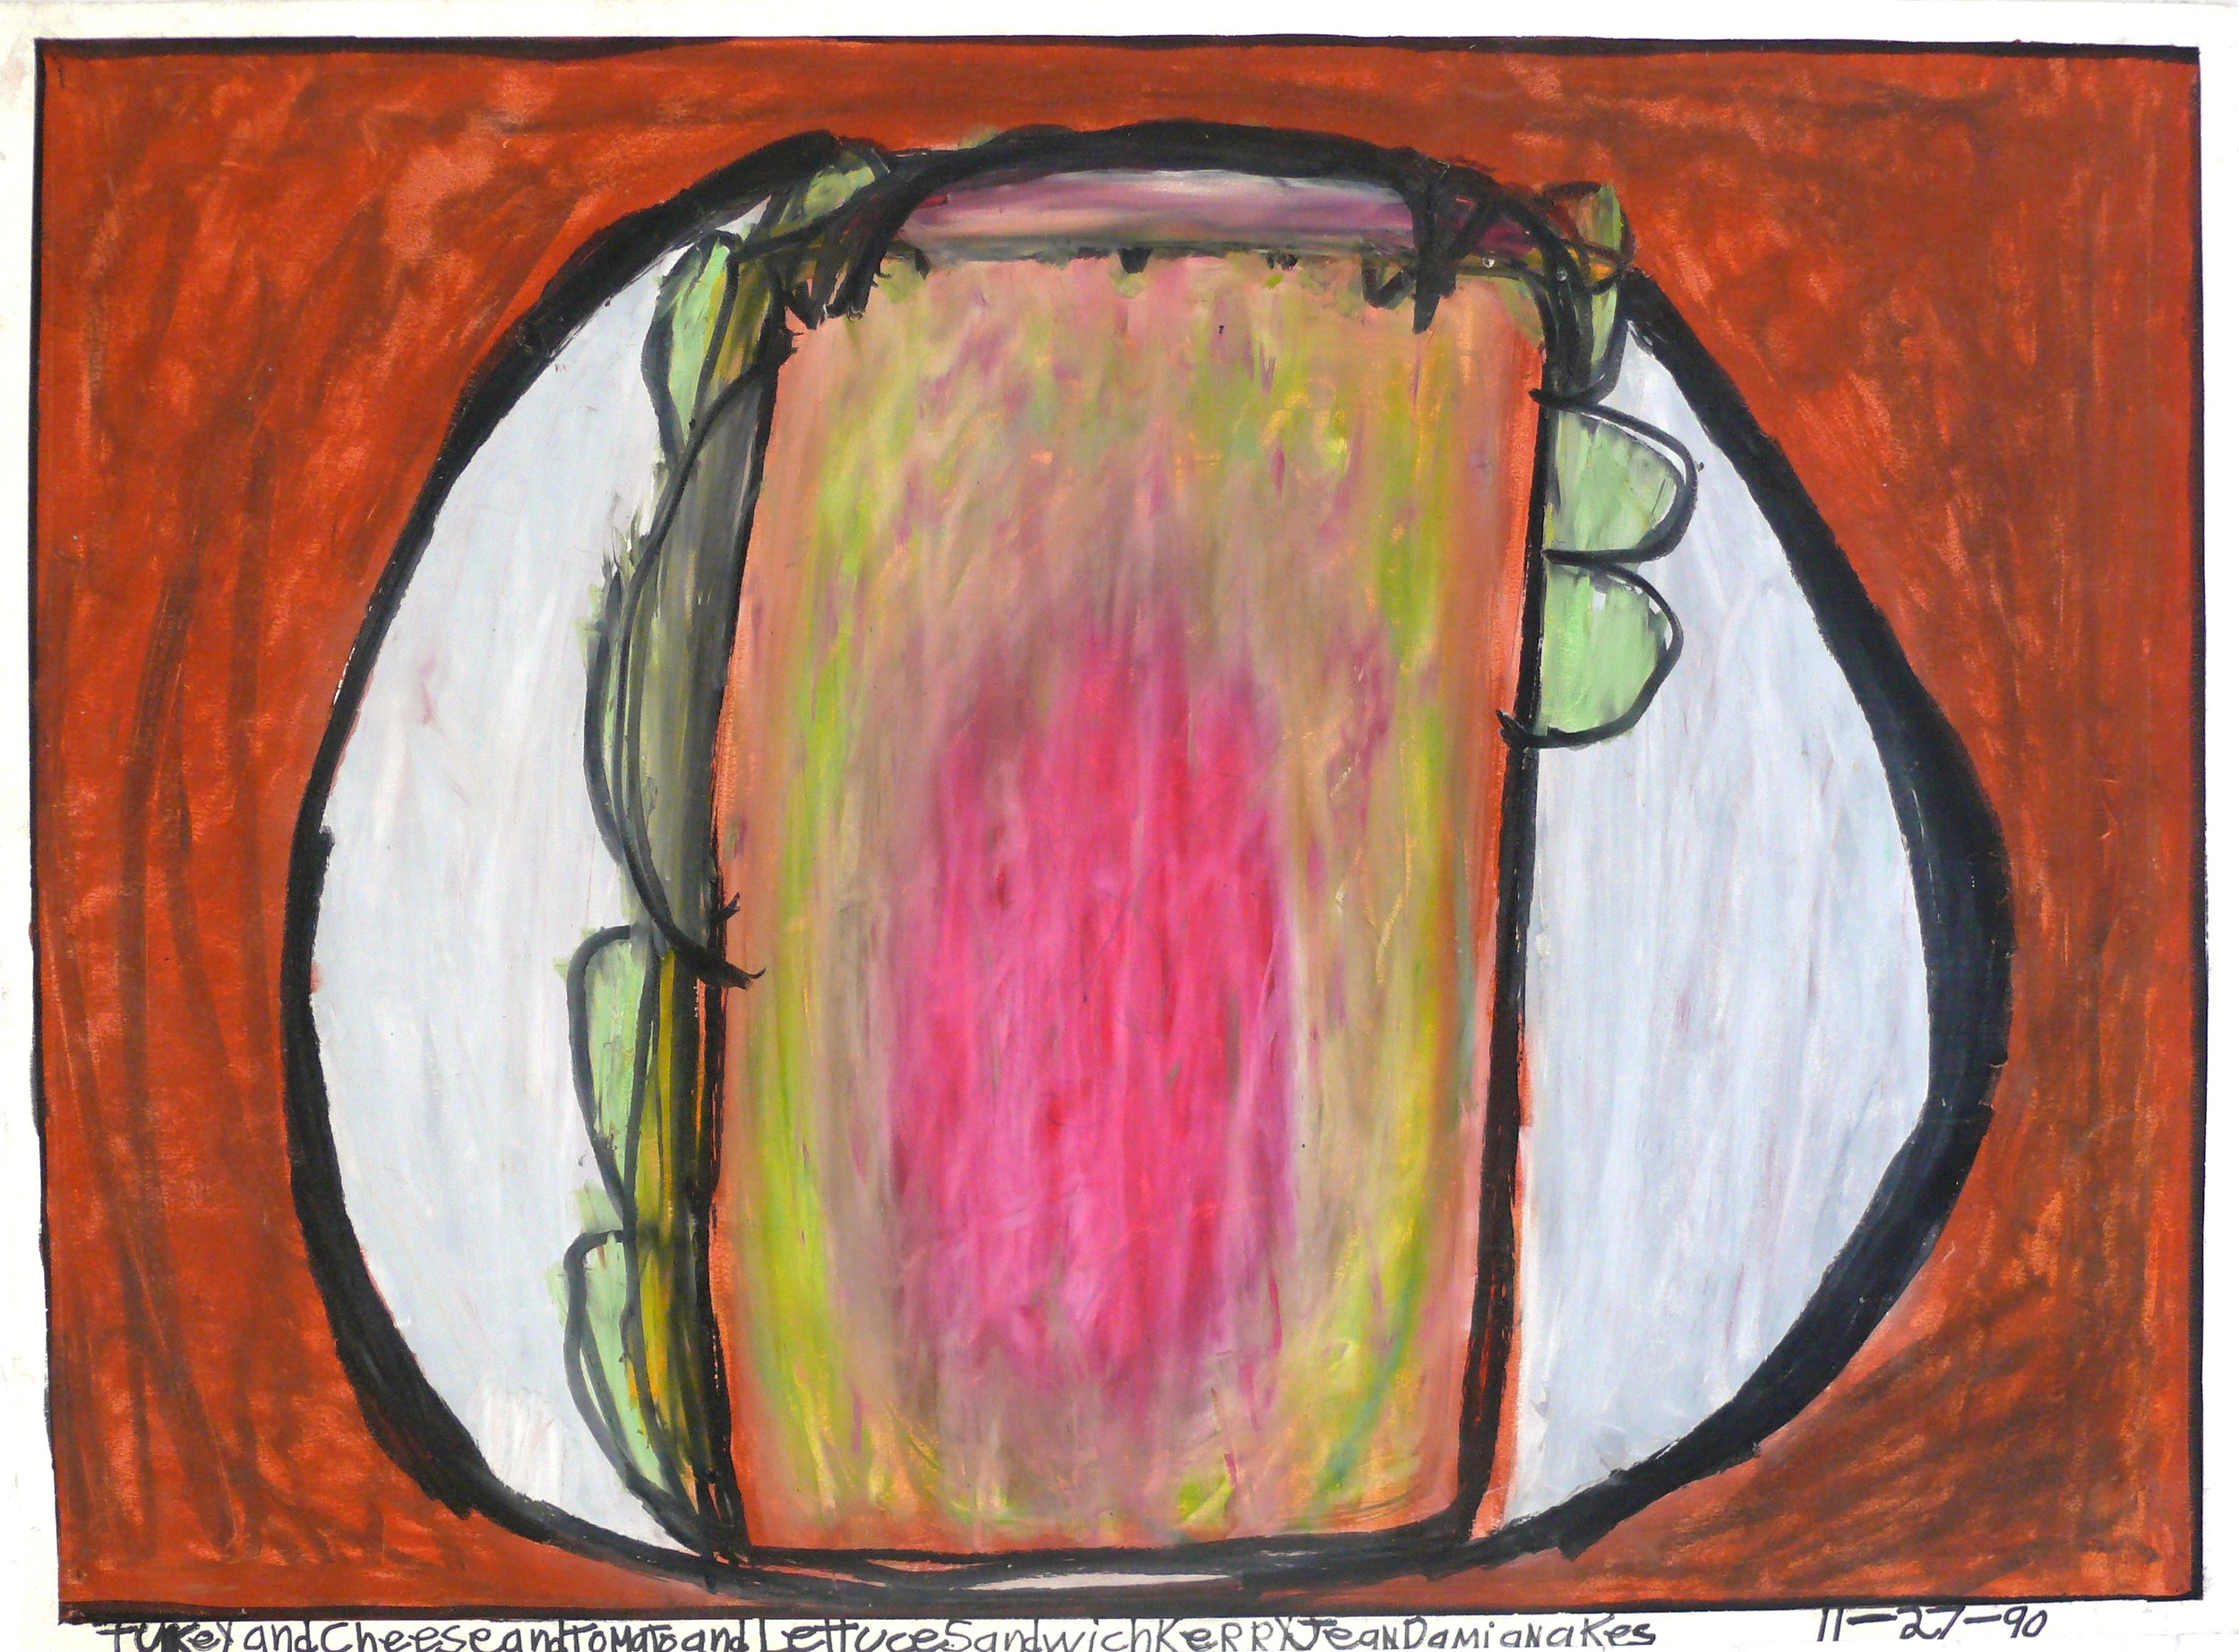 """Turkey and Cheese and Tomato and Lettuce Sandwich , oil pastel on paper, 22"""" x 30"""", 1990"""